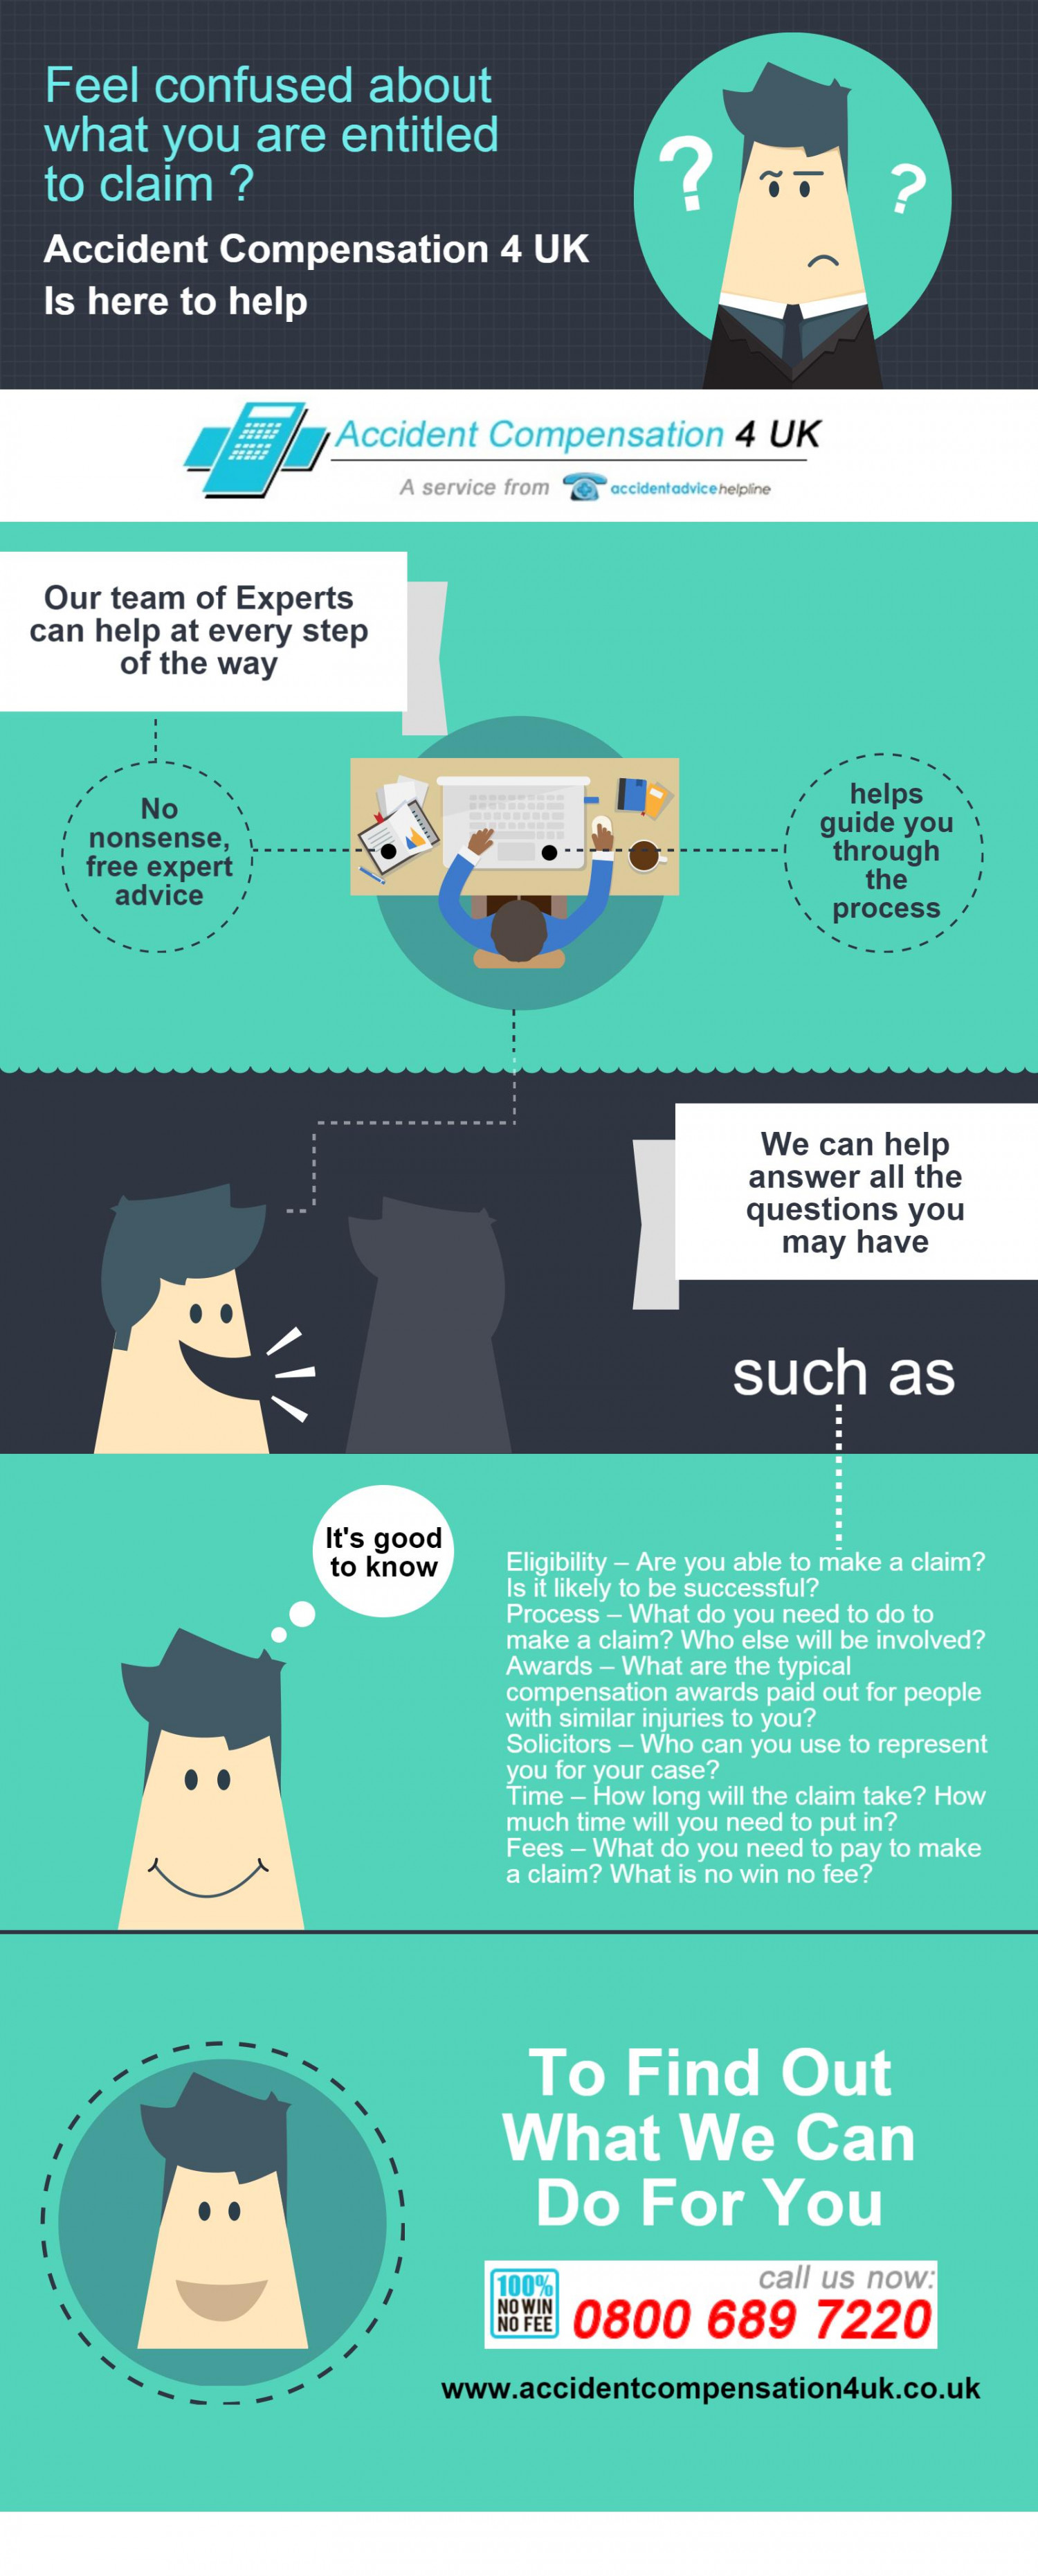 Feeling confused about what you are entitled to claim compensation for? Infographic